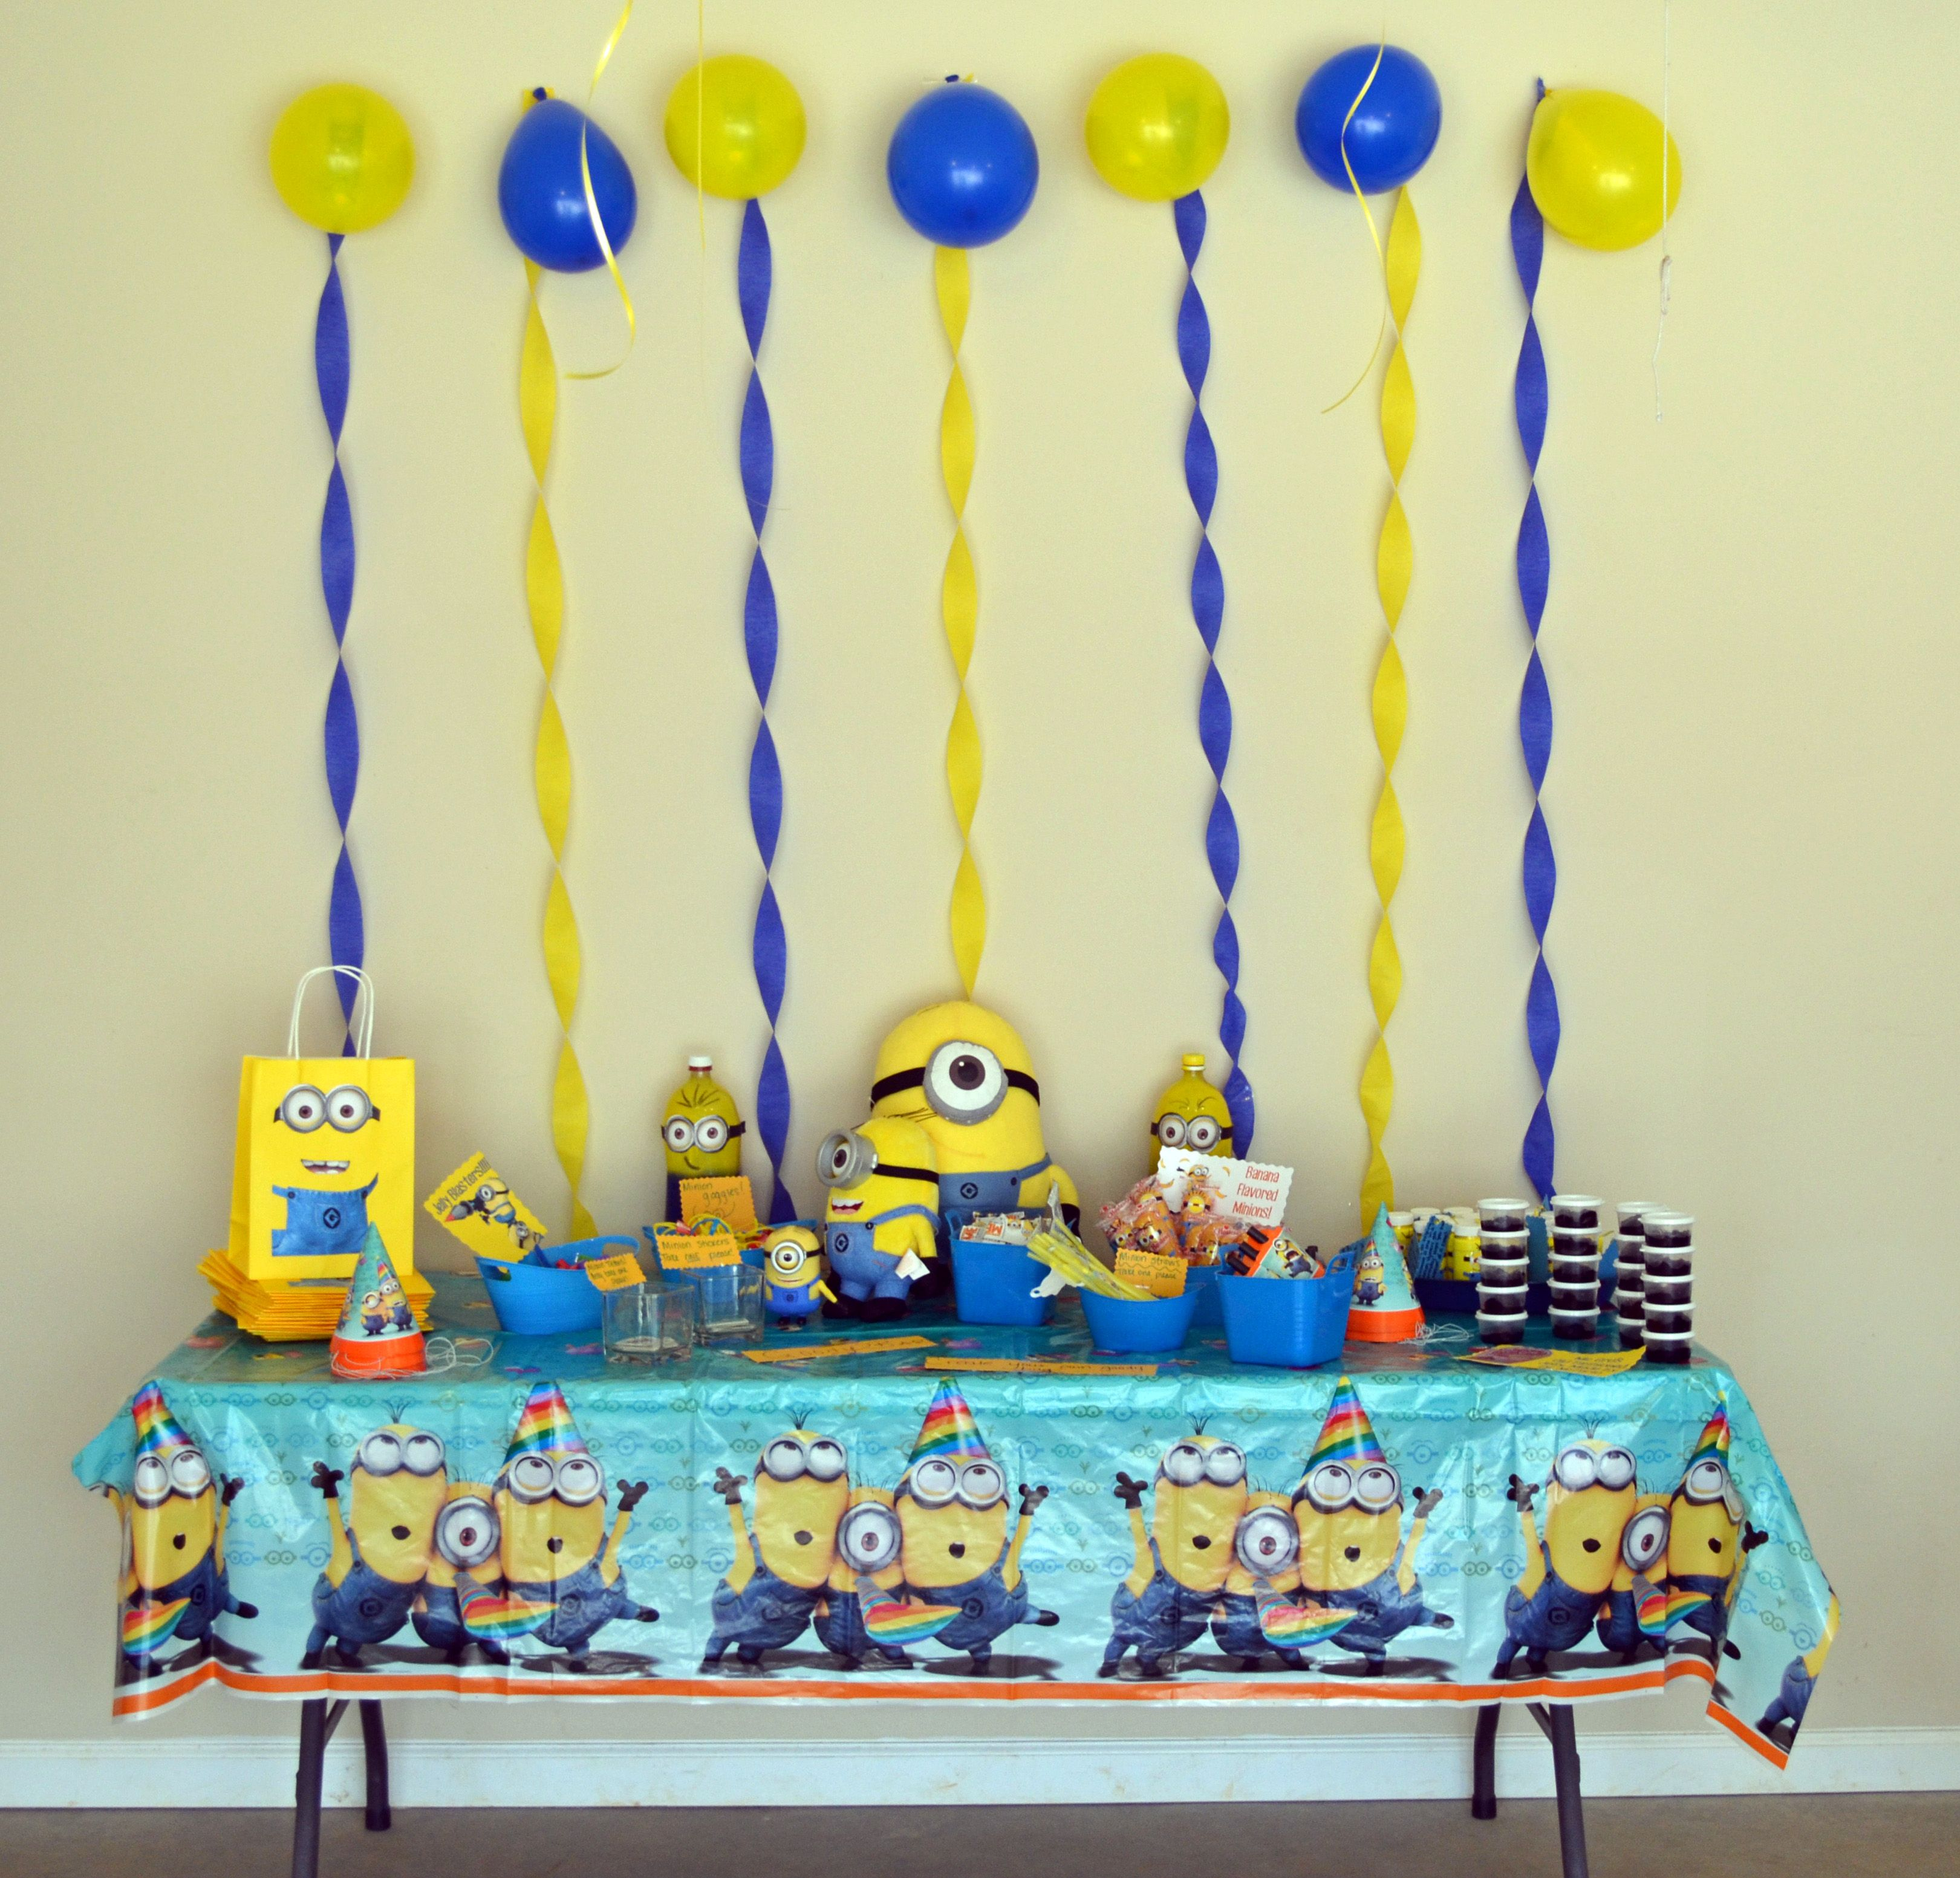 Minion Party Despicable Me Minion Birthday Party Ideas Instead Of Pre Making